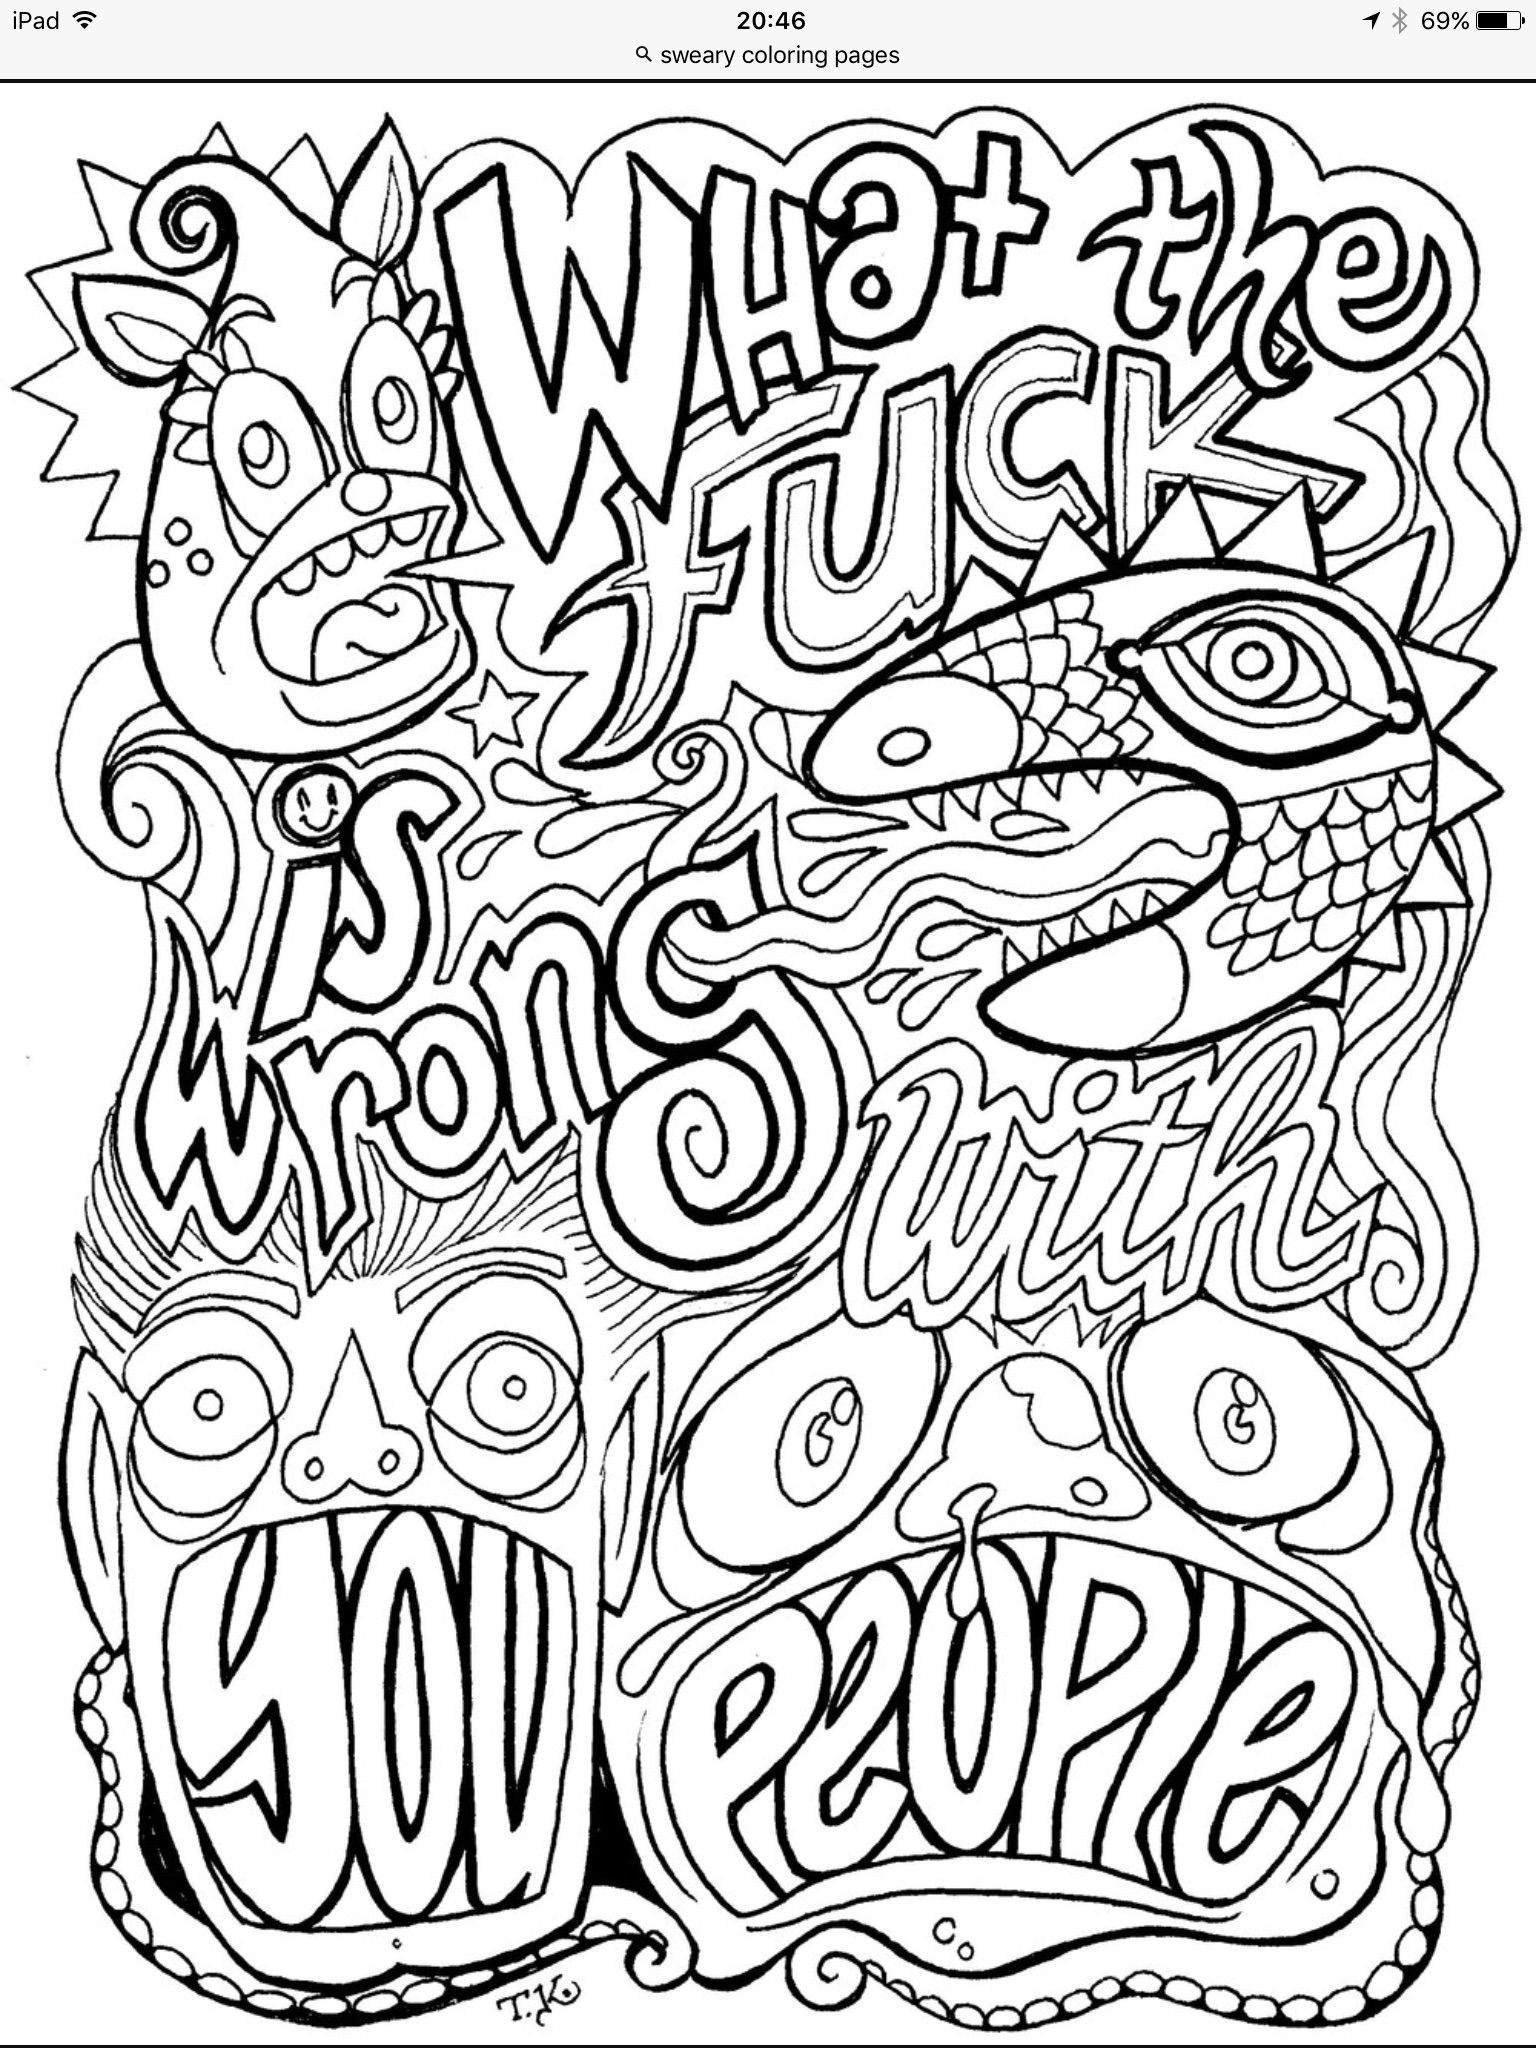 Pin on Ink Line Colouring Pages